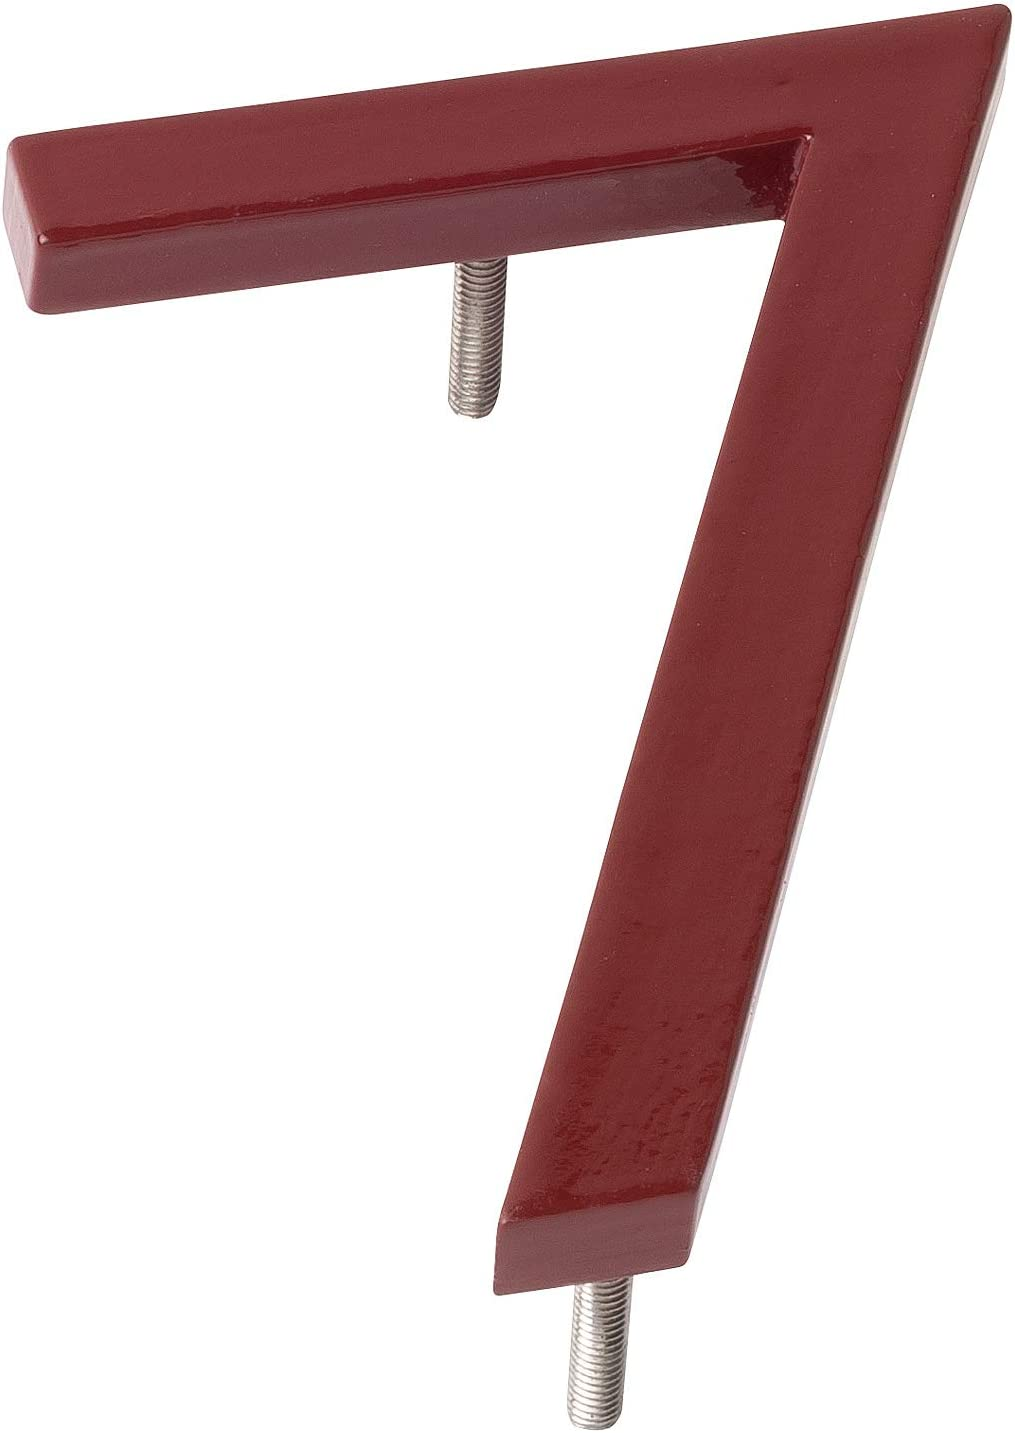 Montague Metal Products MHN-4-F-BR1-0 Solid Brushed Aluminum Modern Floating Address House Numbers 4 Powder Coated Brick Red